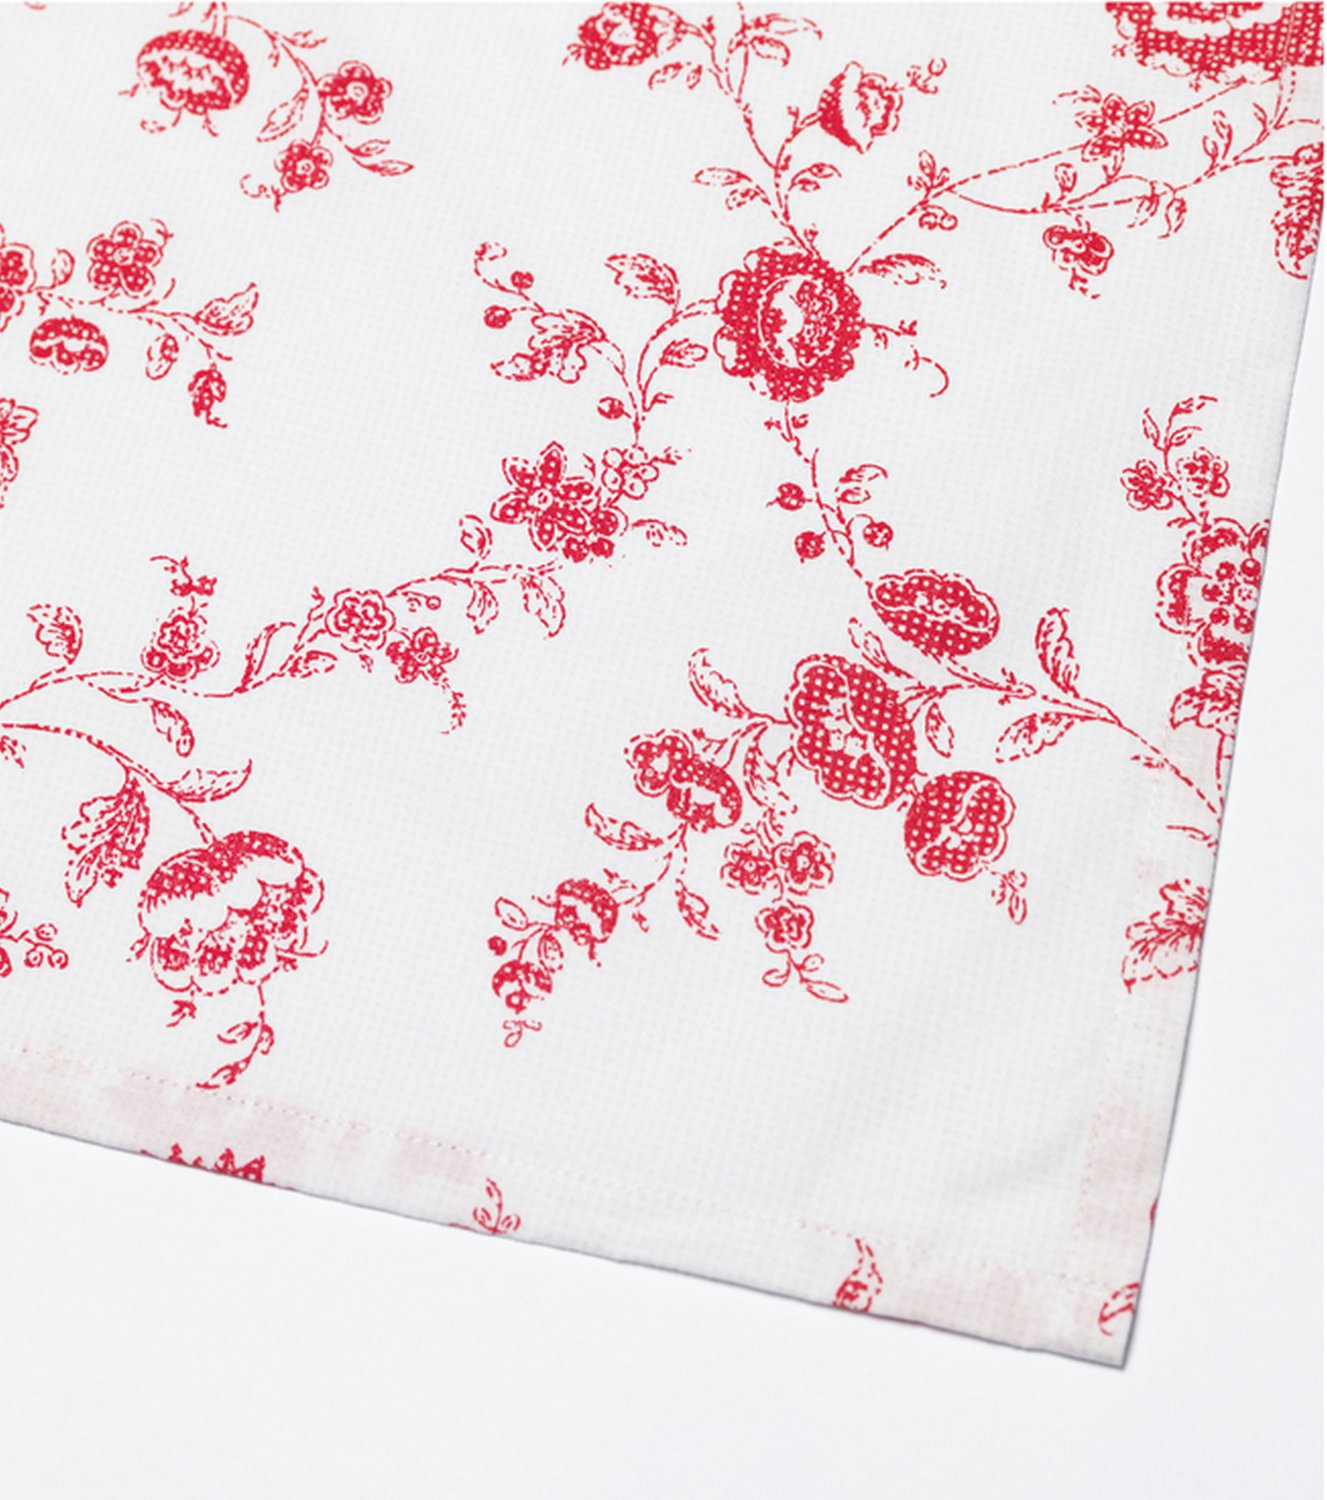 IKEA Inbjudande Rectangular TABLECLOTH Red White Cotton Floral Retro Dot Design Large OBLONG Fabric